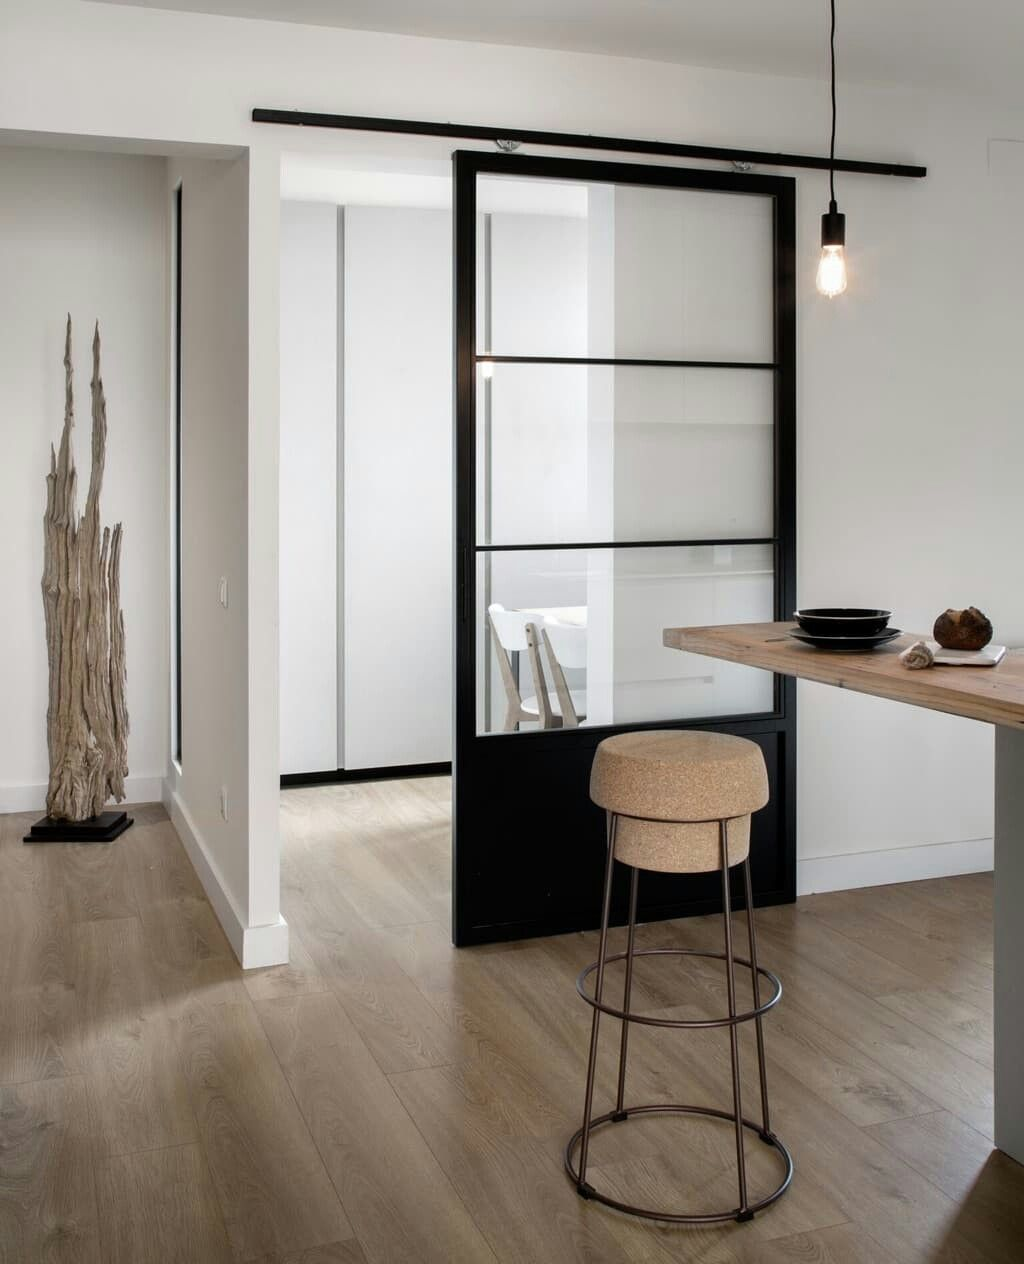 This Gl And Black Sliding Door Separates The Main Part Of Kitchen From A Dining Area Gives E Modern Look That S Accentuated